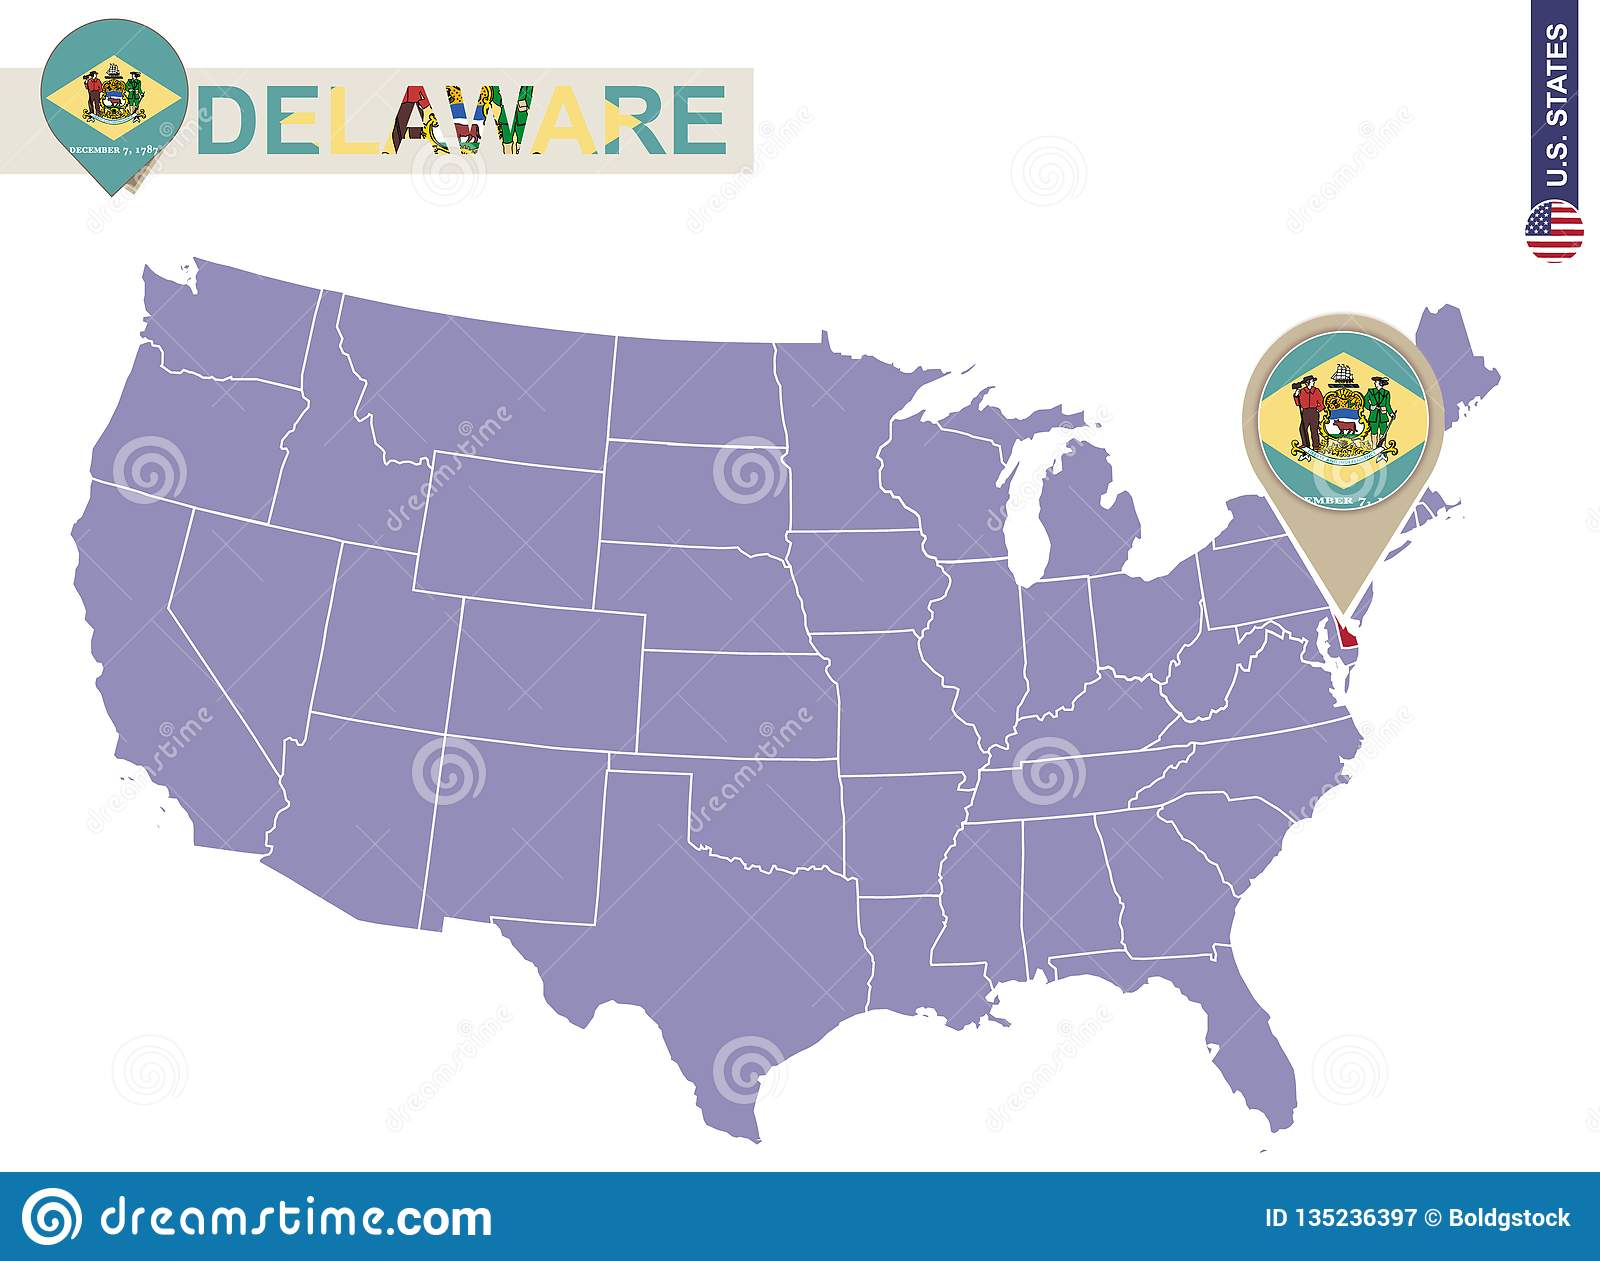 Delaware State On USA Map. Delaware Flag And Map Stock Vector ... on